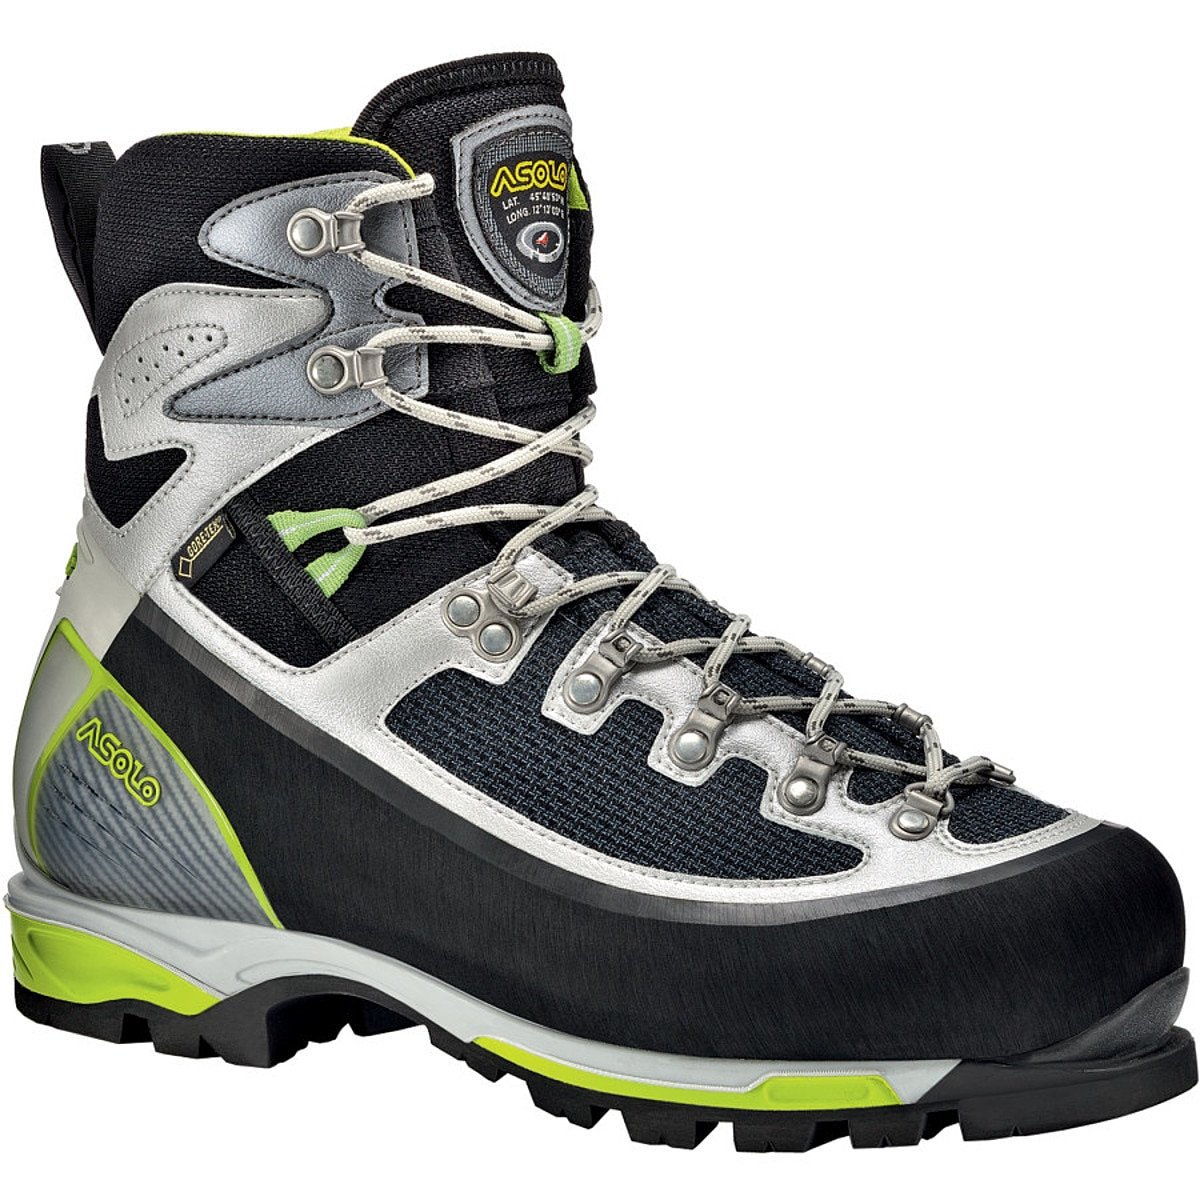 photo: Asolo Women's 6B+ GV Boot